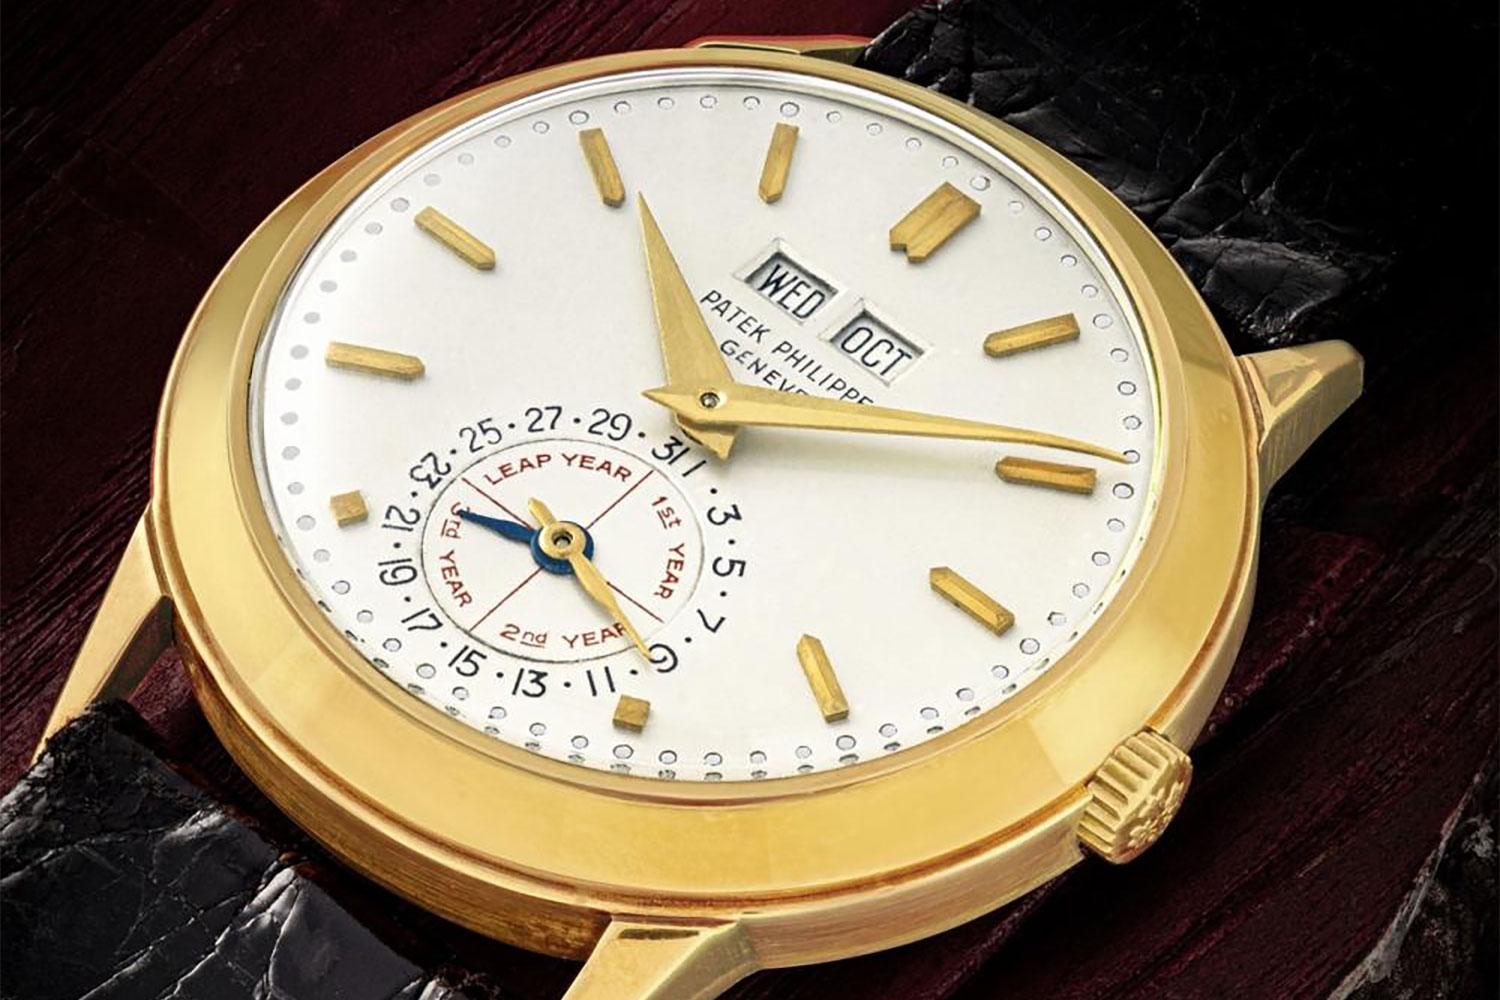 B1.8bn of rare watches under the hammer in BKK